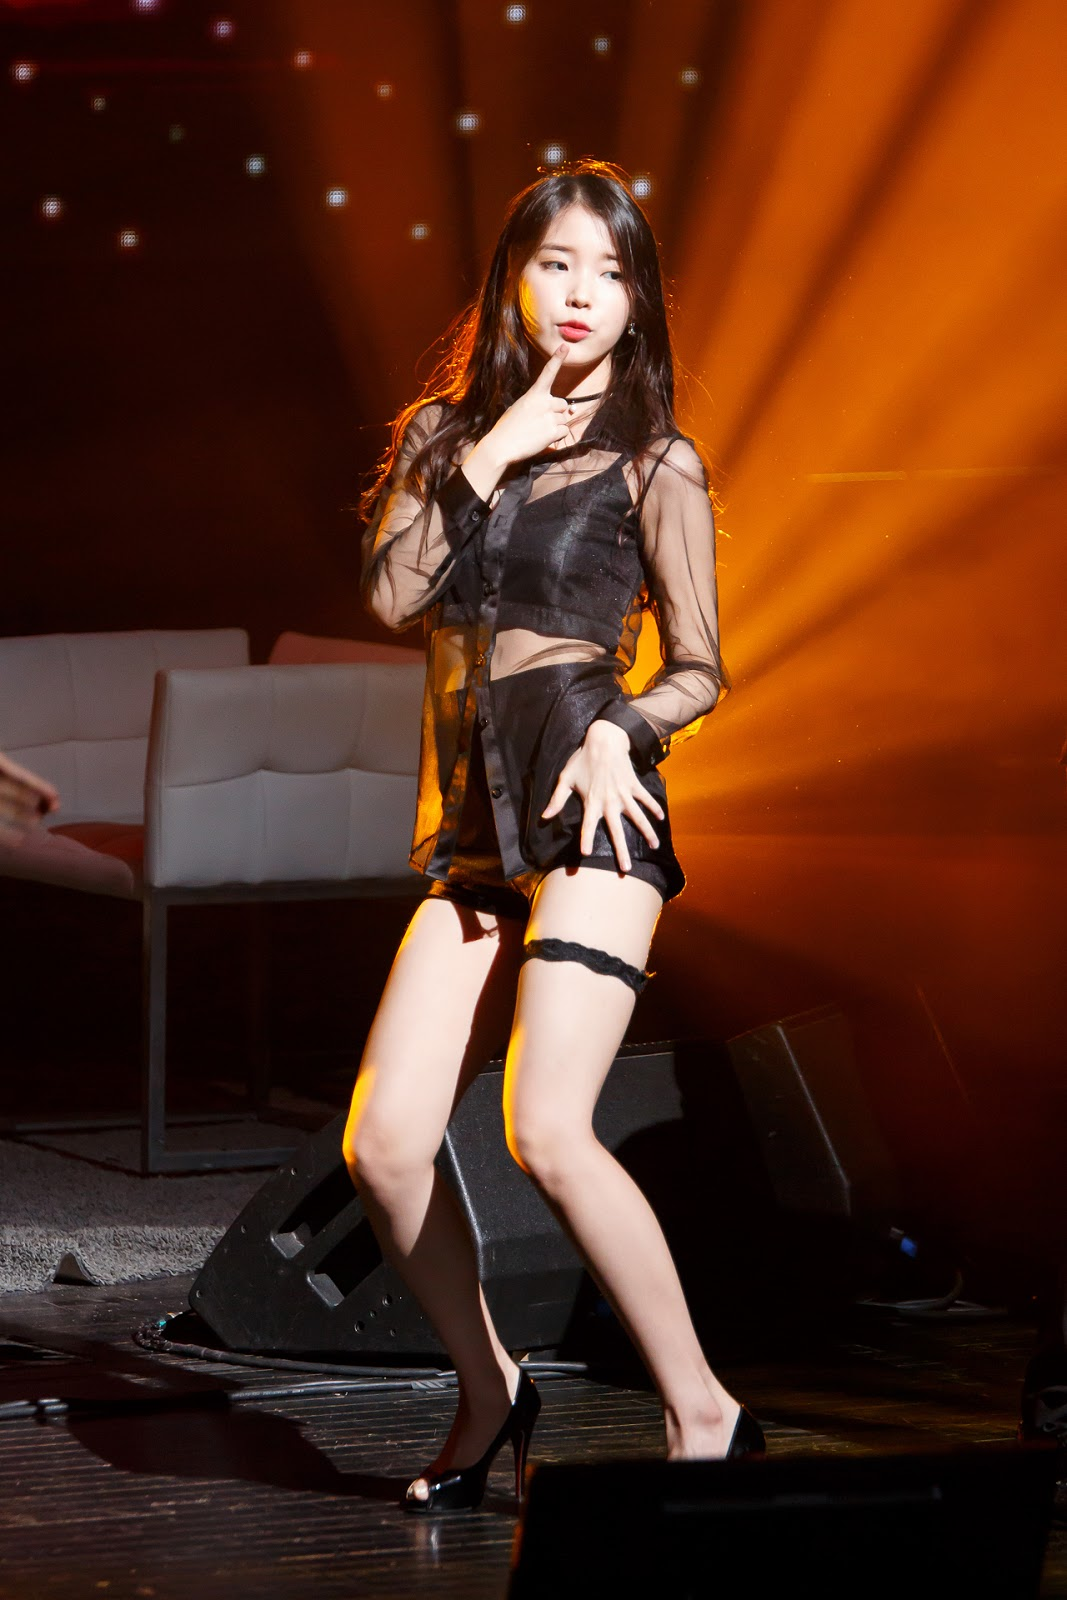 Iu Drops Jaws With This Absolutely Hot Outfit  Daily K Pop News-3297